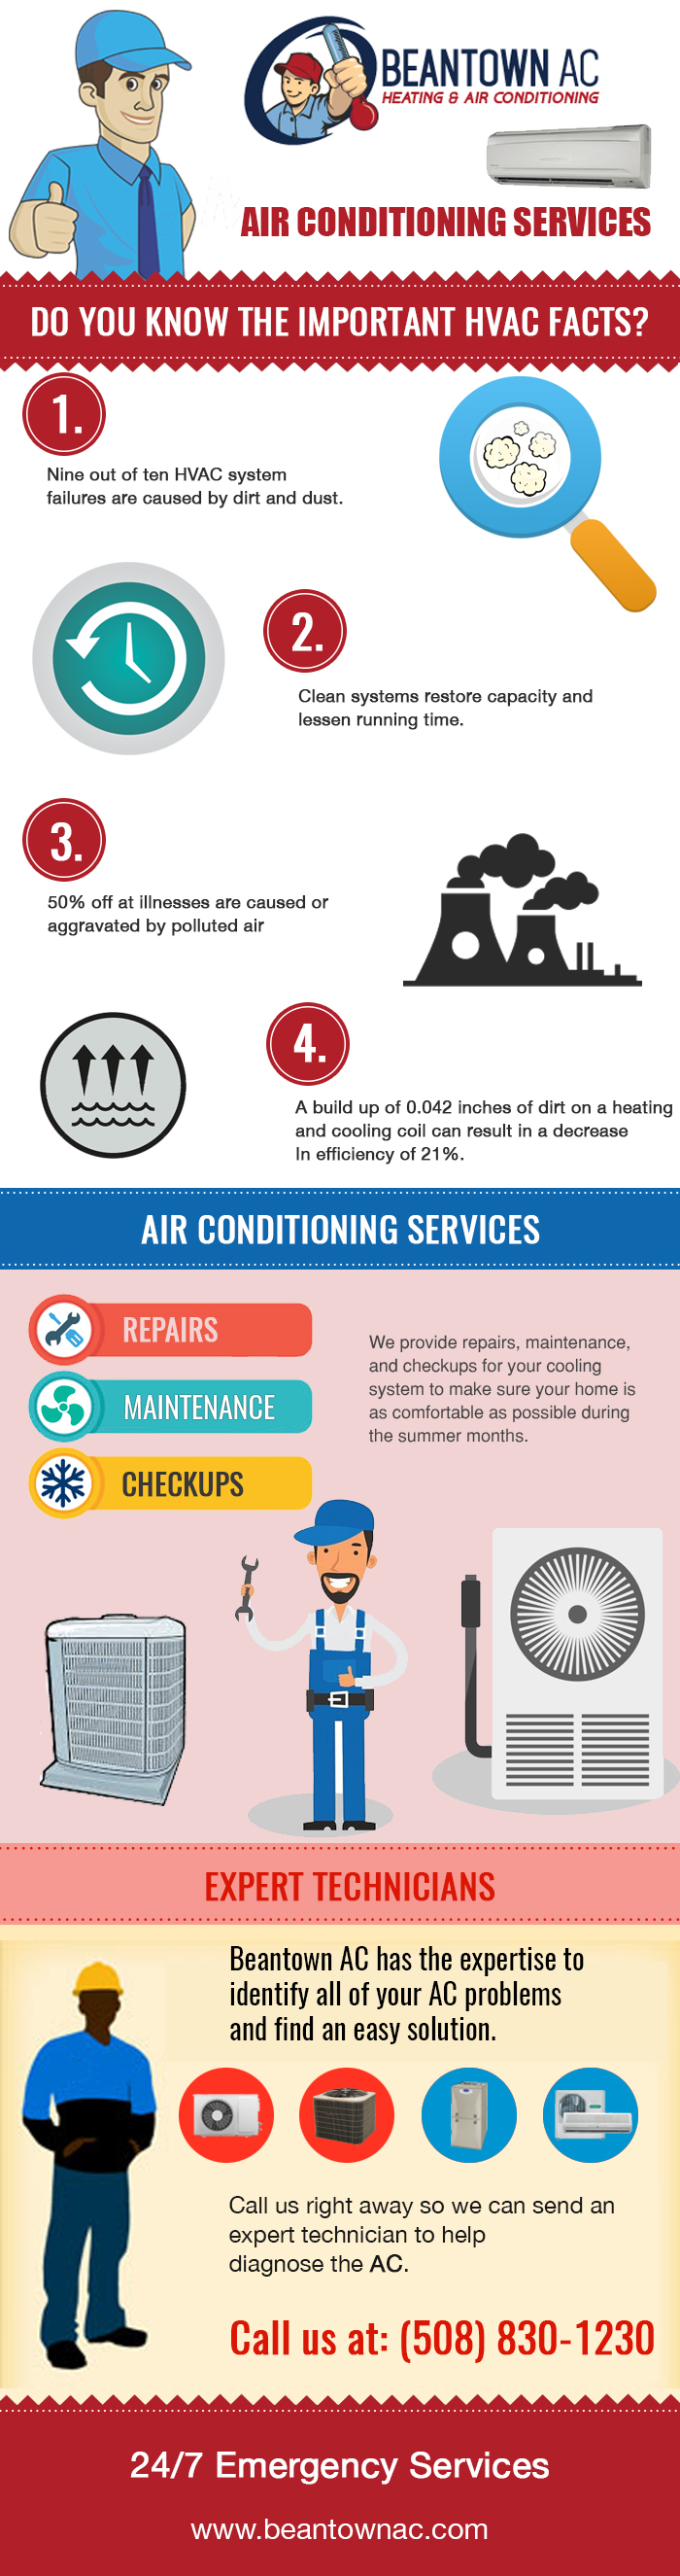 Pin By Beantown Ac On Affordable Air Conditioning Air Conditioning Services Heating And Air Conditioning Repair And Maintenance